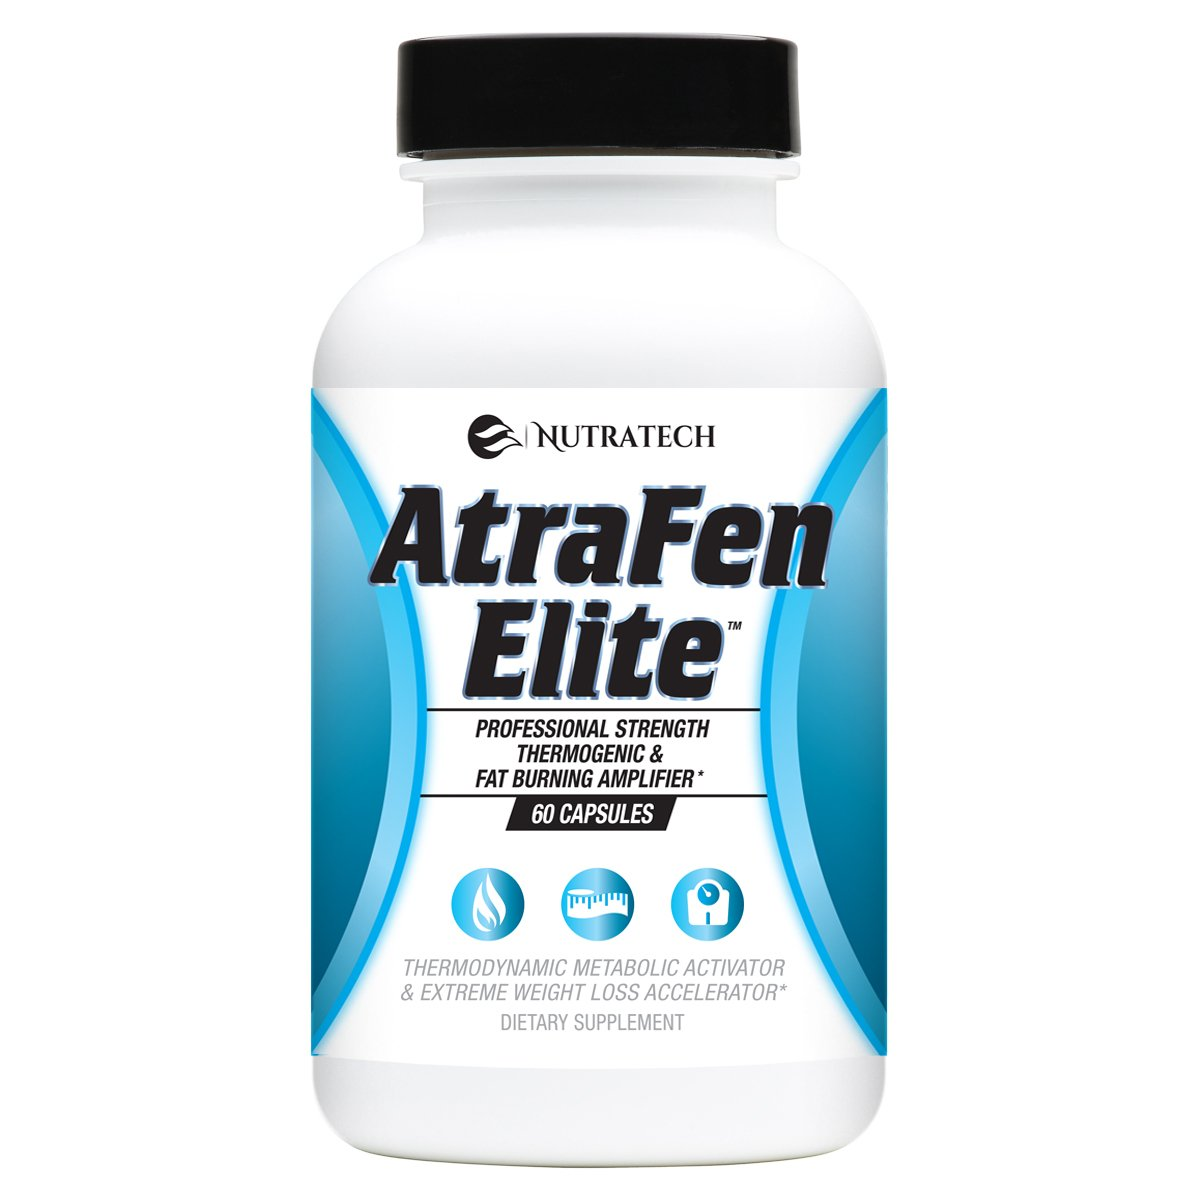 Atrafen Elite - Professional Formula Appetite Suppressant Fat Burner Diet Pill and Thermogenic for Fast Weight Loss. Works Great for Those on Keto Diets. 60 Count. by Atrafen